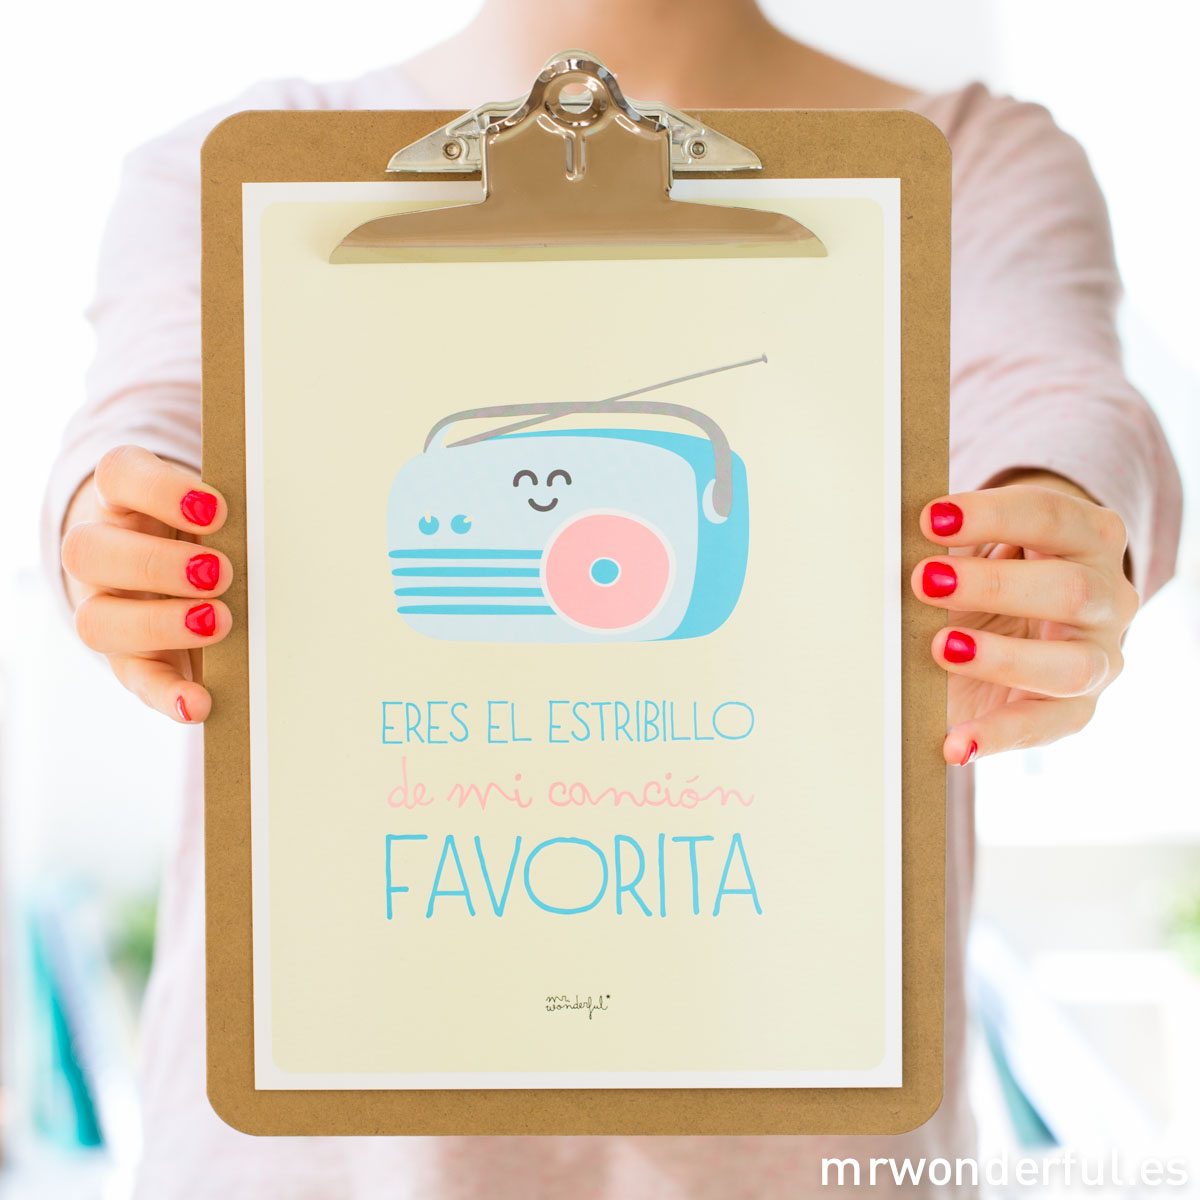 mrwonderful_LAM-SUMMER-04_lamina-estribillo-cancion-favorita-14-Editar